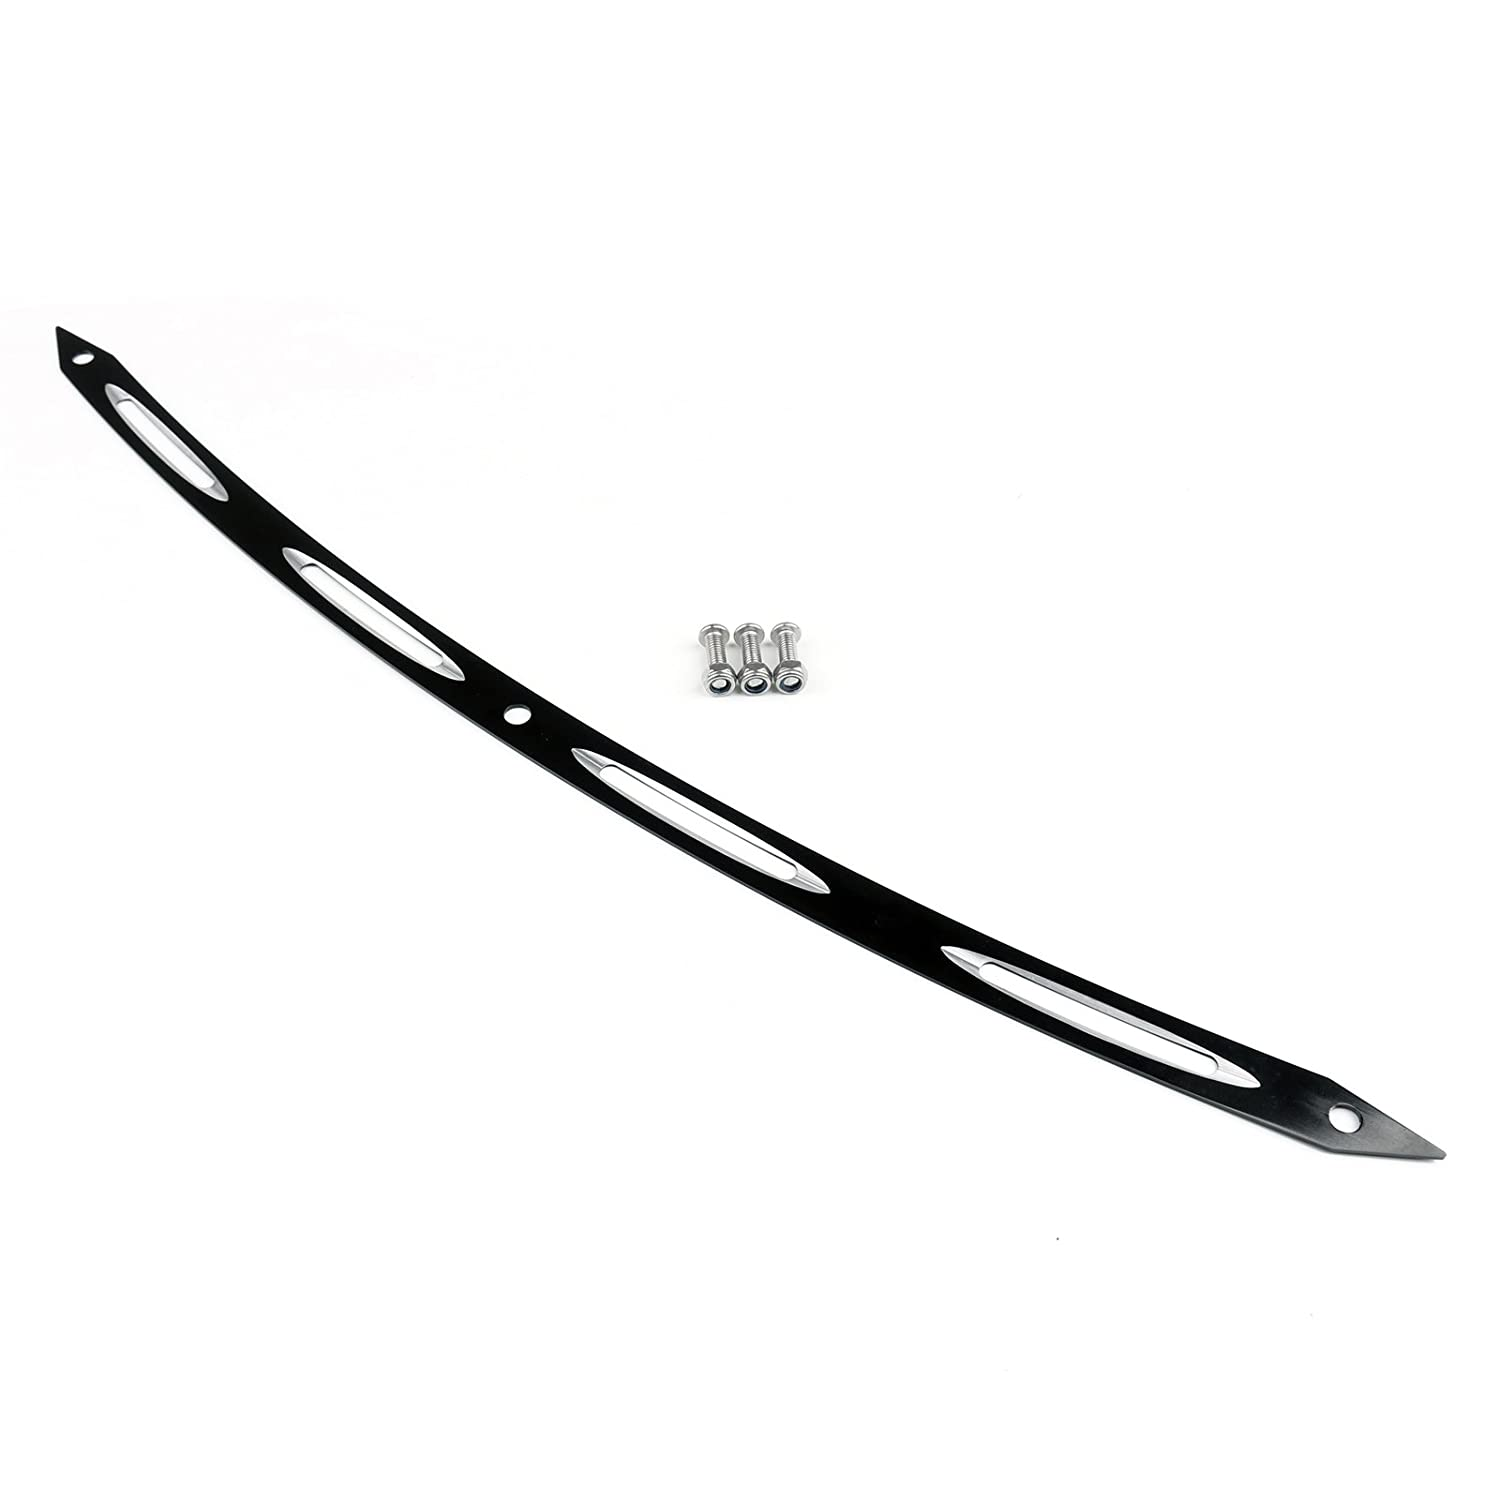 Areyourshop Black Spear Deep Cut Beveled Windshield Trim For 1996-2013 Harley Touring FLHT